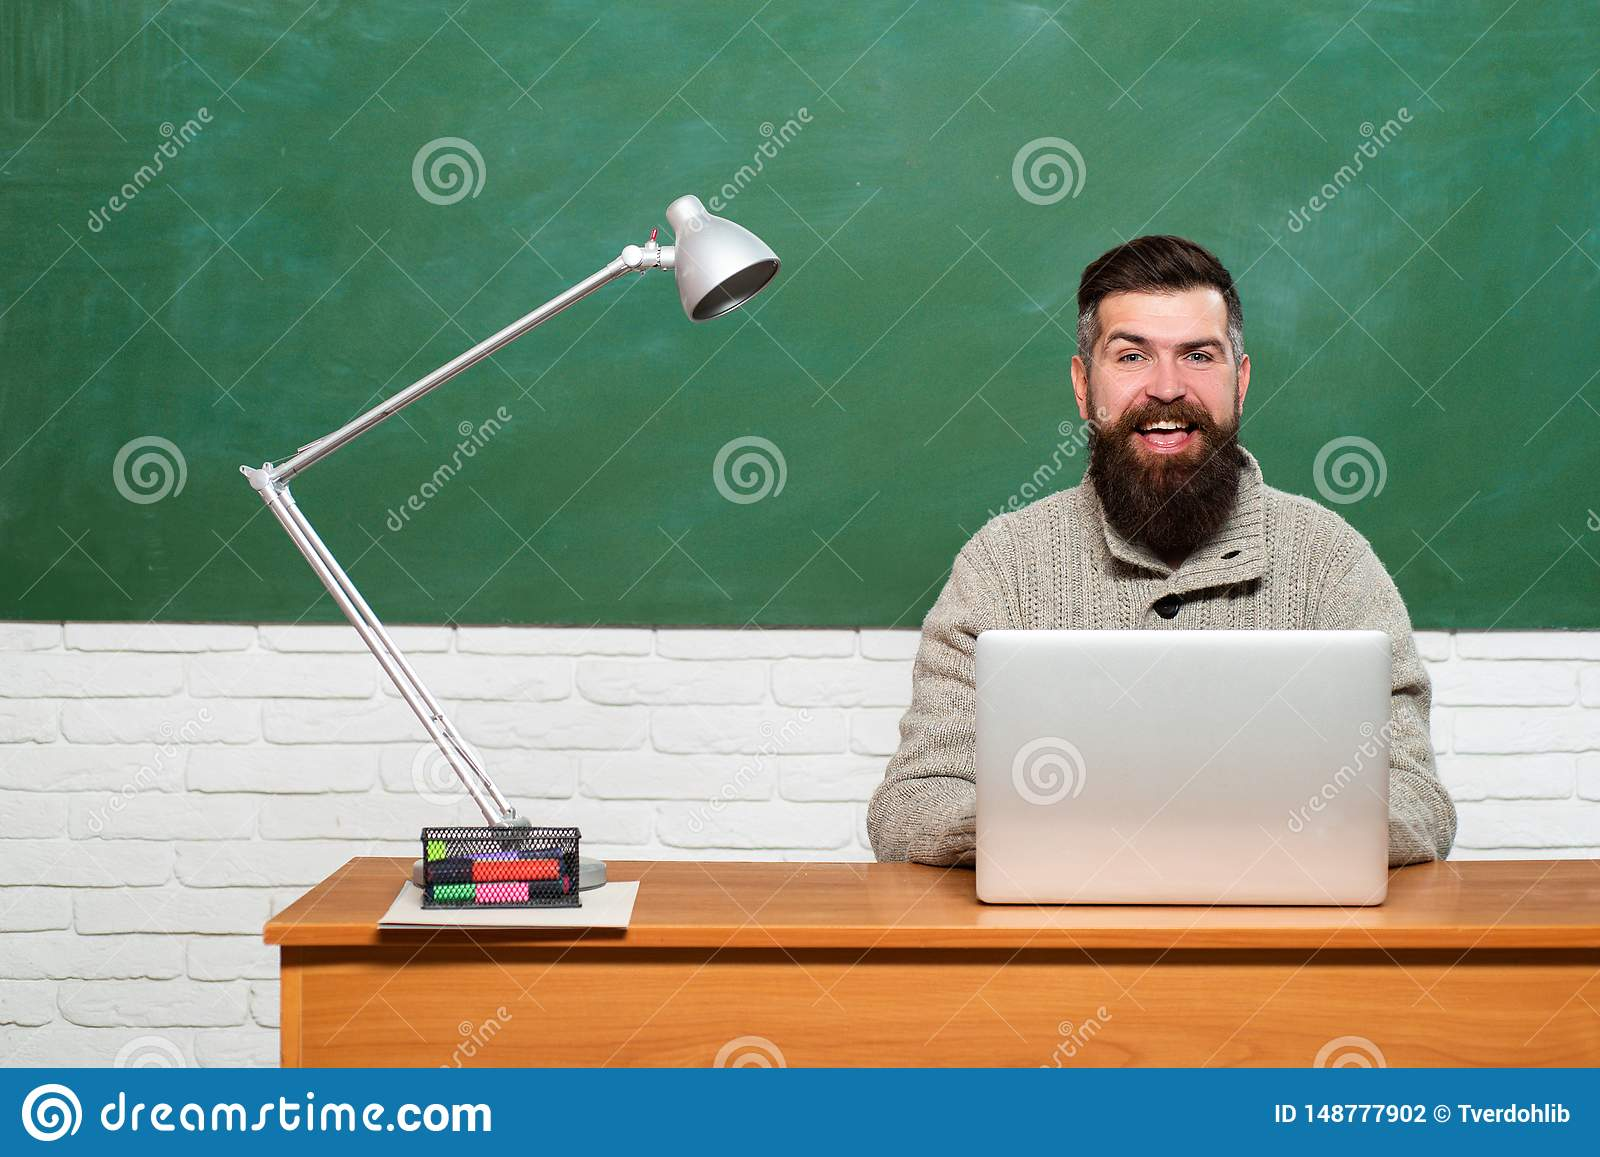 Tutor. Preparing for exam in college. Young teacher near chalkboard in school classroom. Science and education concept.